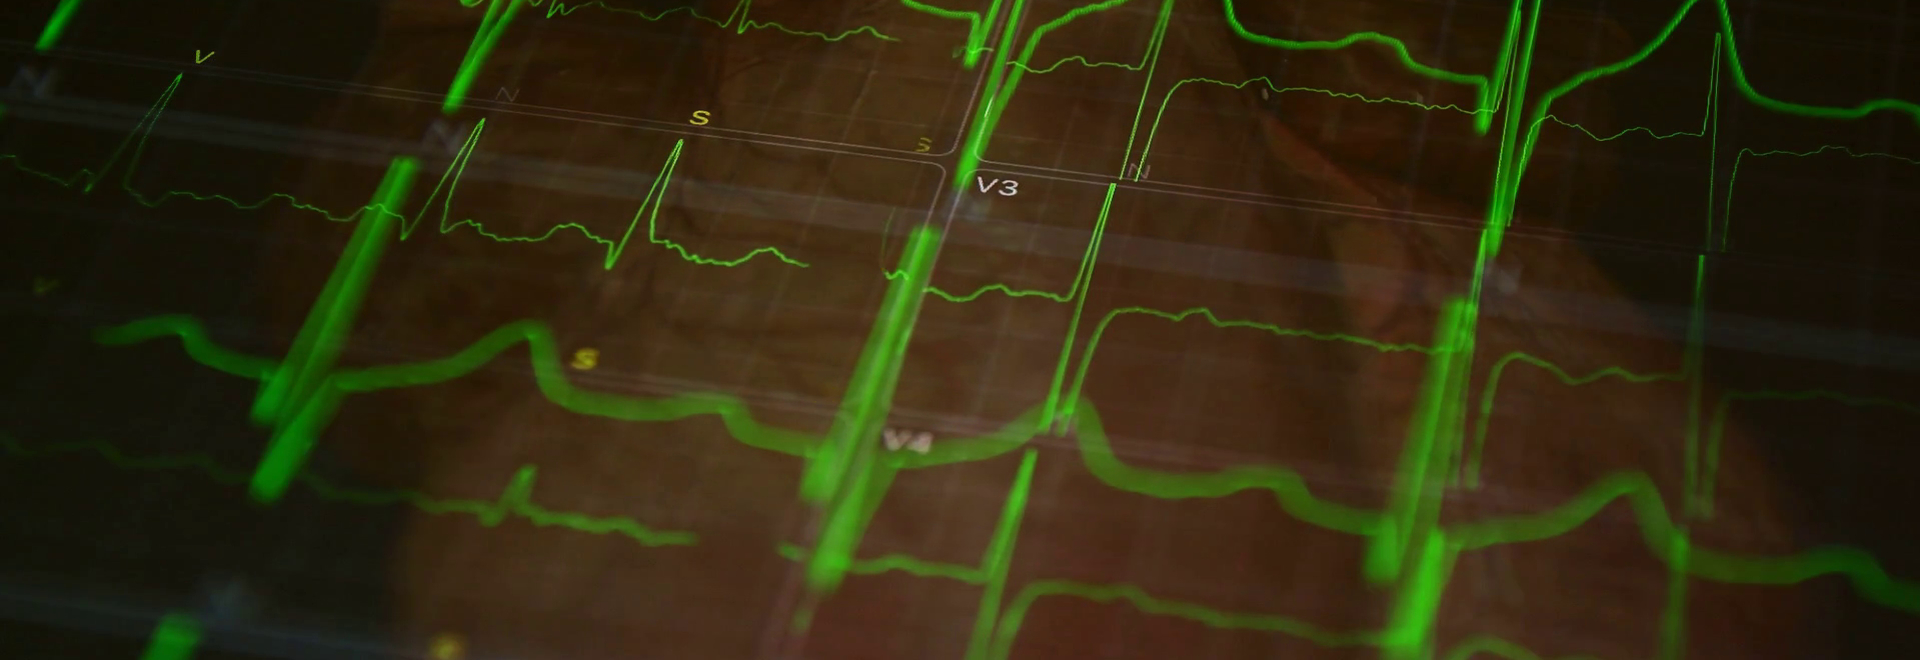 Surprising Discovery Could Lead to New Treatments for Strokes and Cardiac Arrest